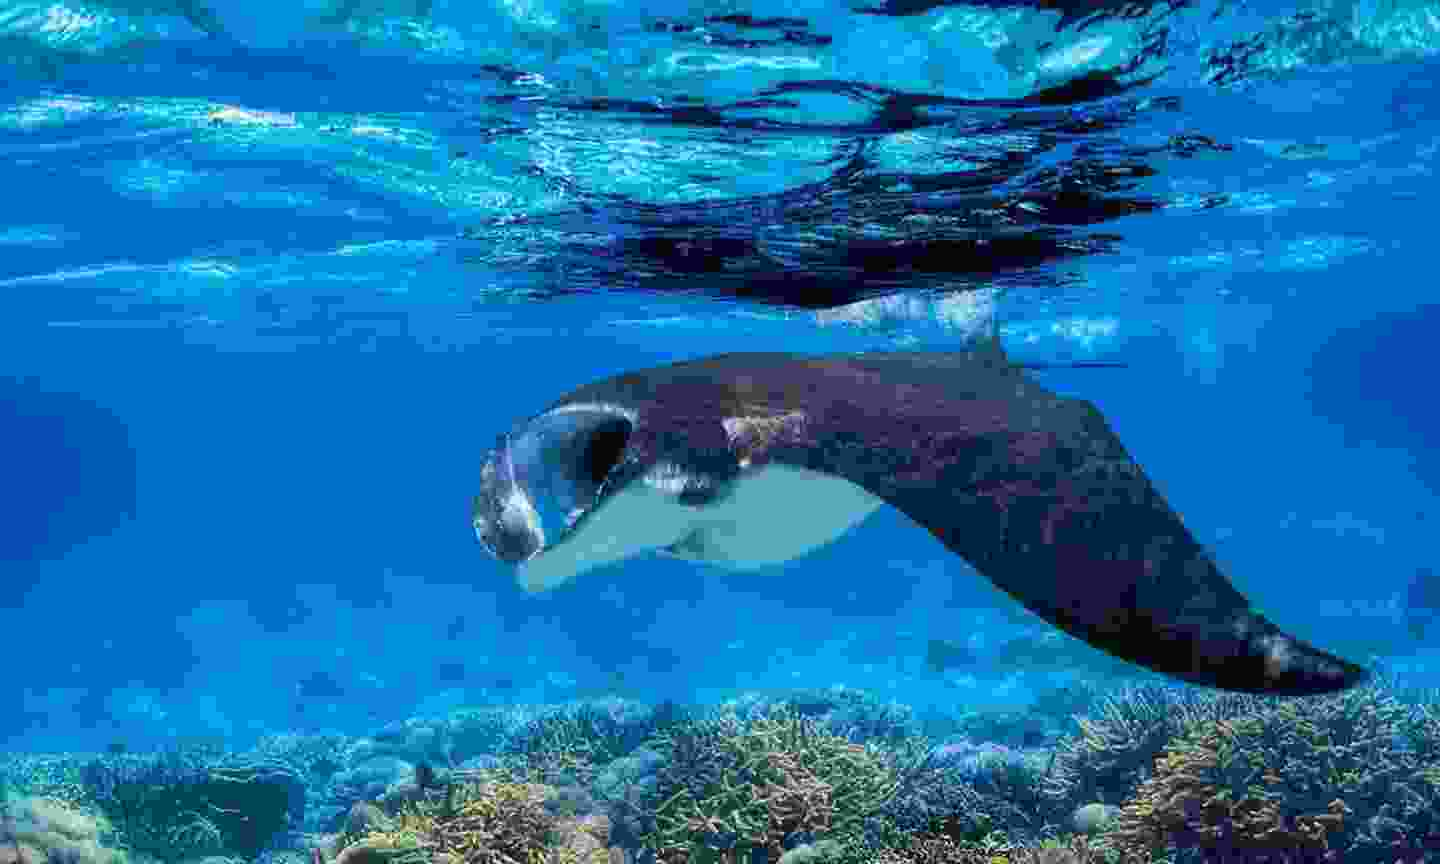 Manta ray on the Great Barrier Reef (Cox & Kings Travel)